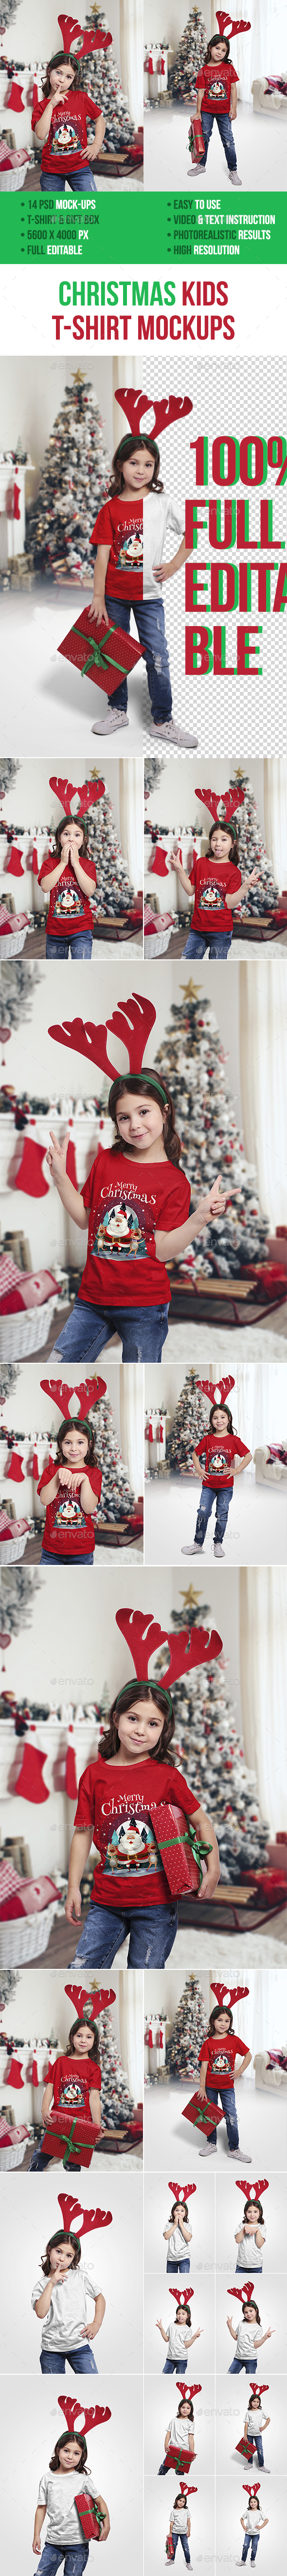 GraphicRiver Christmas Kids T-Shirt Mockups 20979750